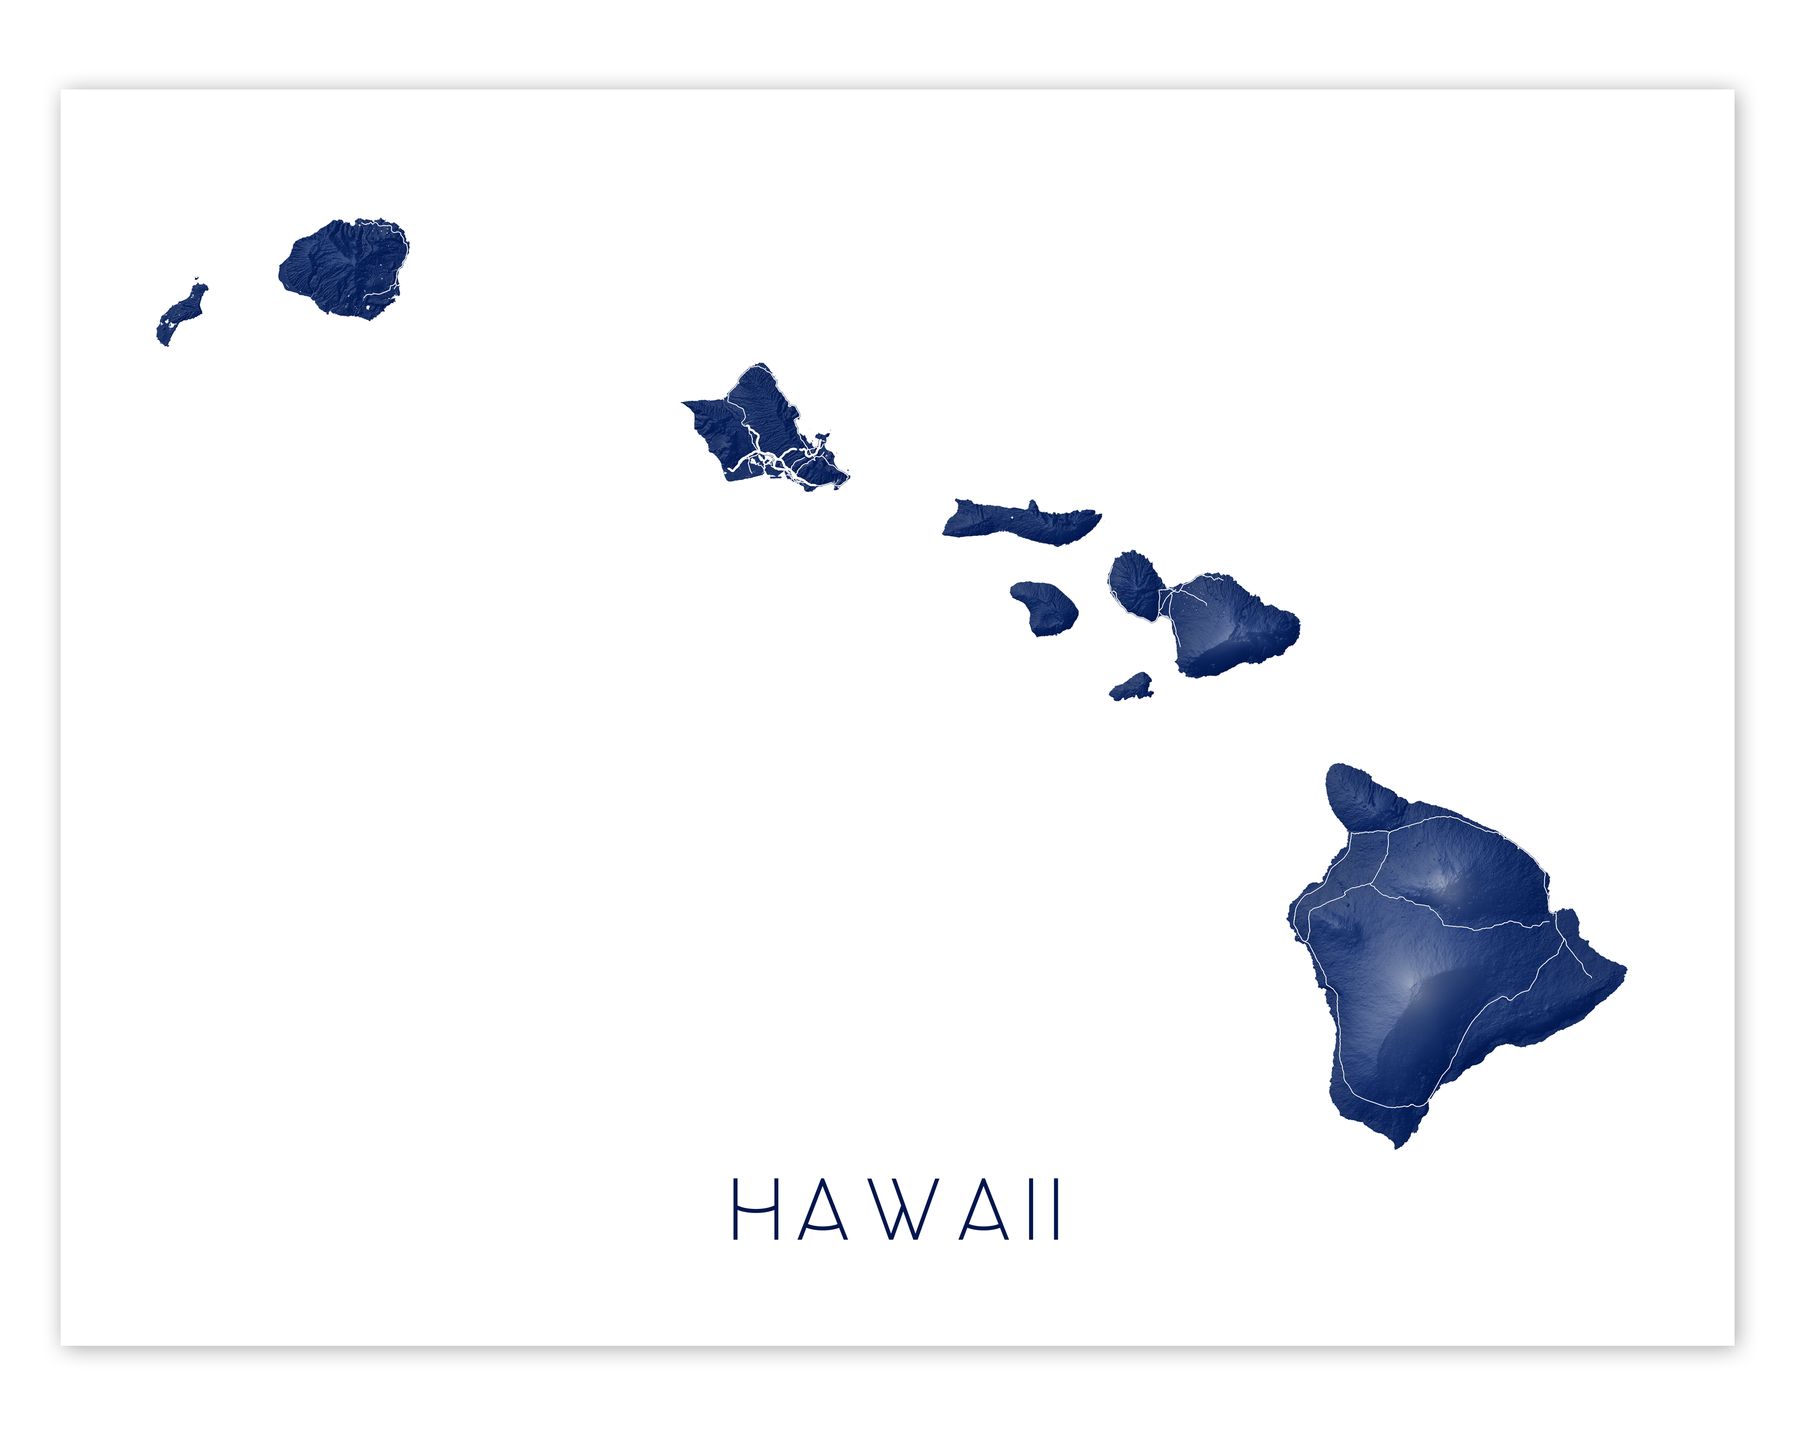 Hawaii islands map print in Midnight by Maps As Art.